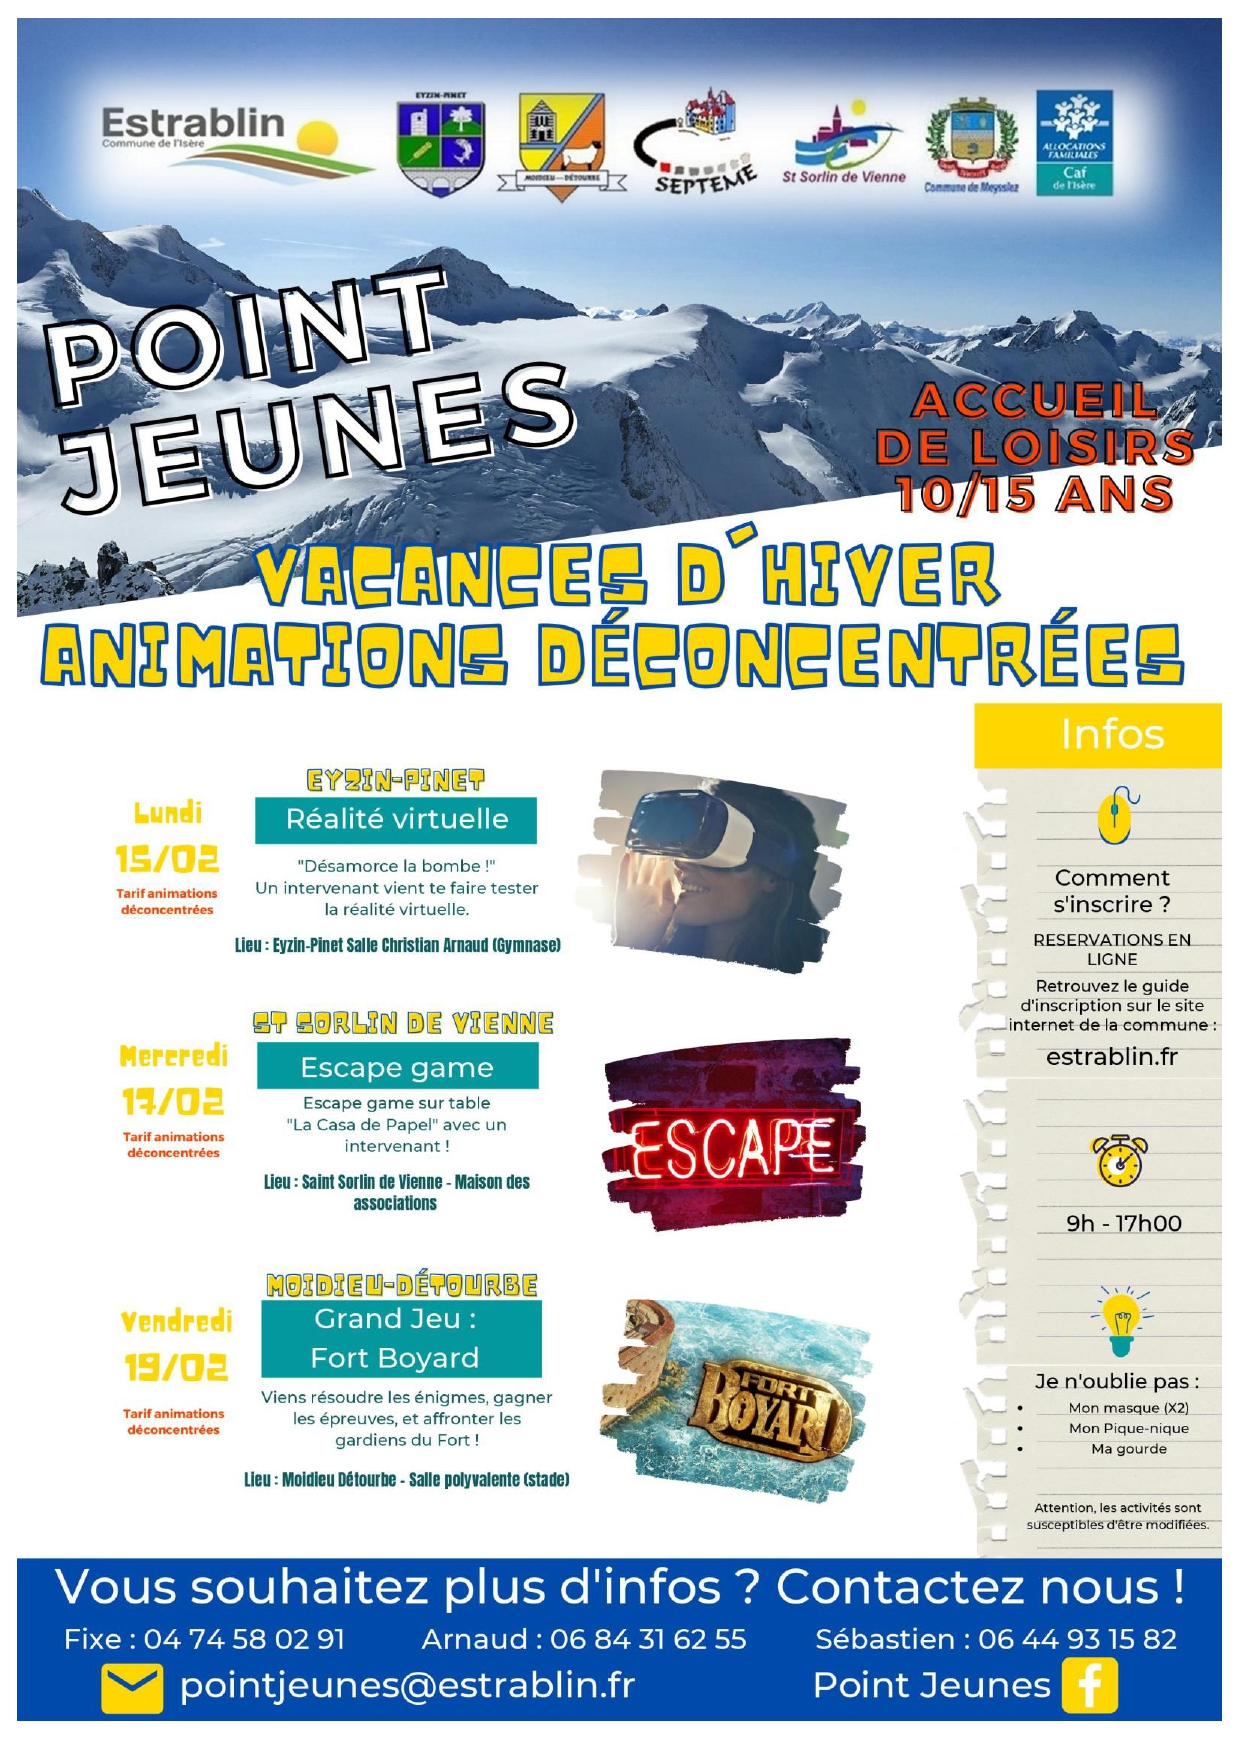 2021-01-16 ANIMATIONS DECONCENTREES - HIVER 2021